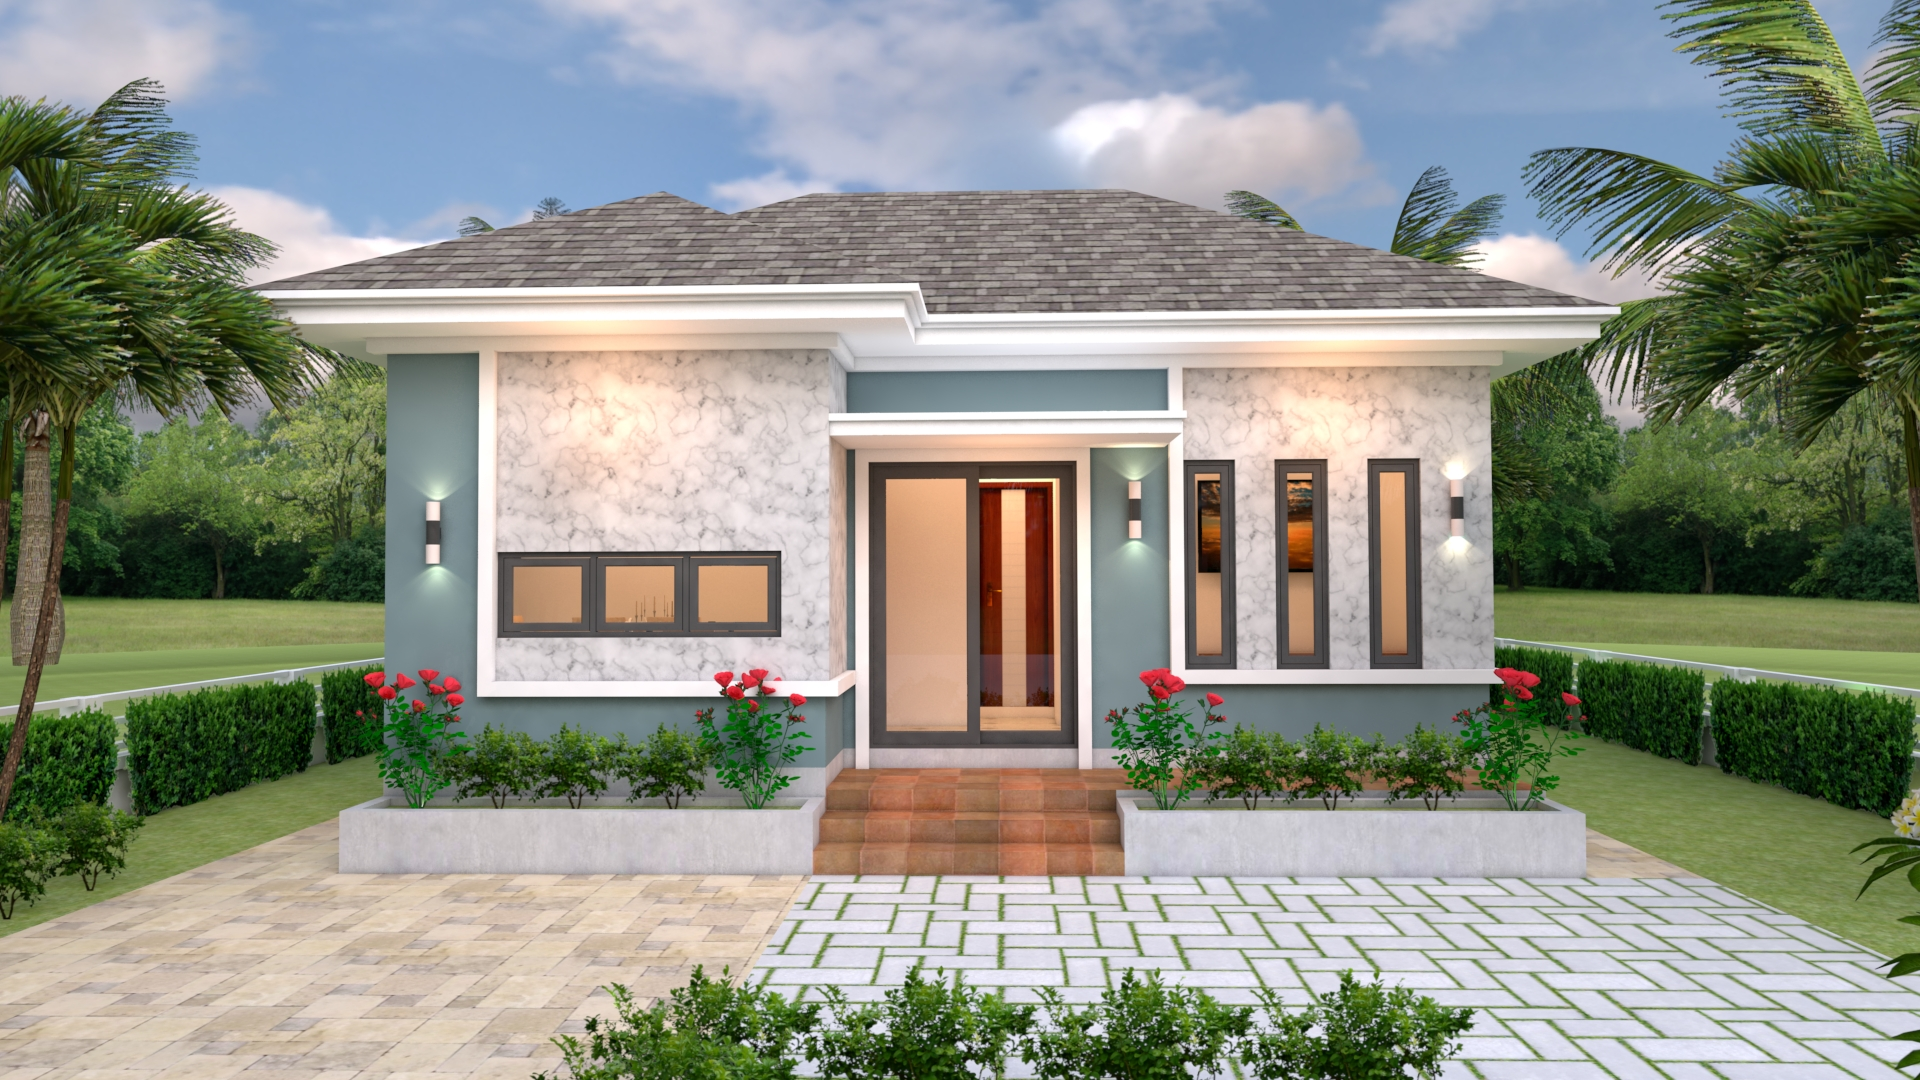 Simple Bungalow House Designs 8x6 Meter 26x20 Feet 2 Beds 1